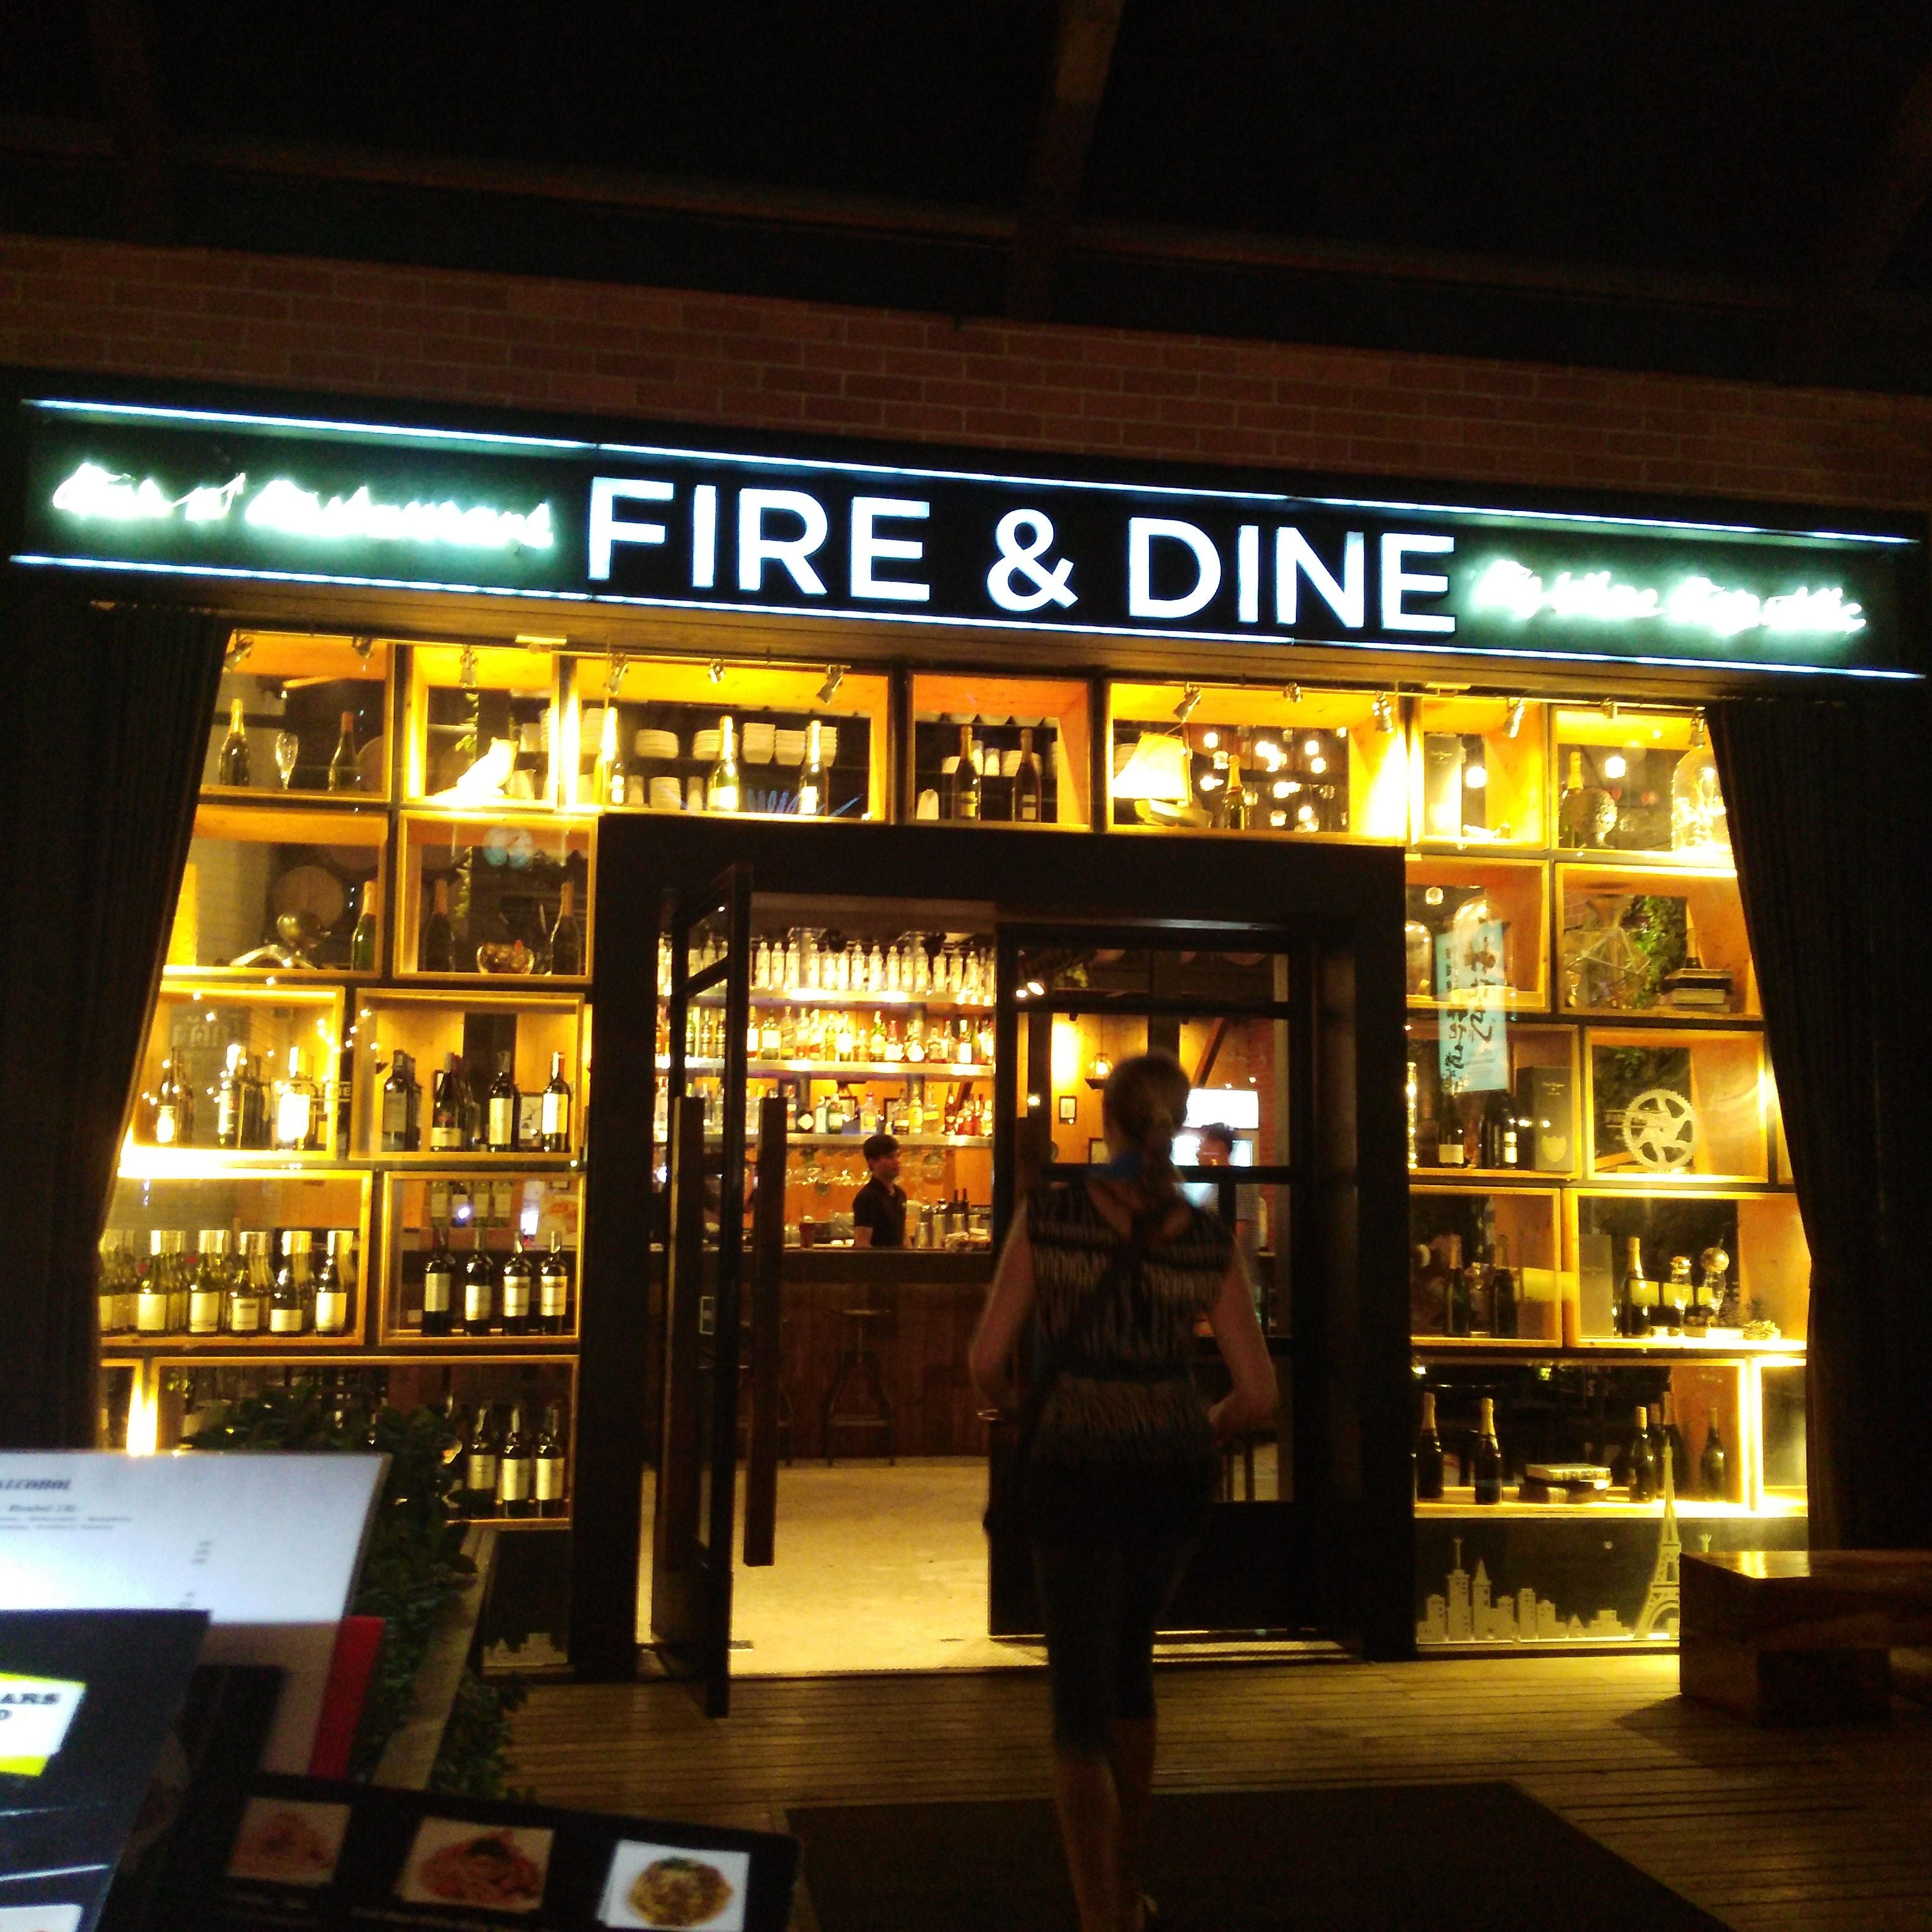 Retail Store in Fire & Dine